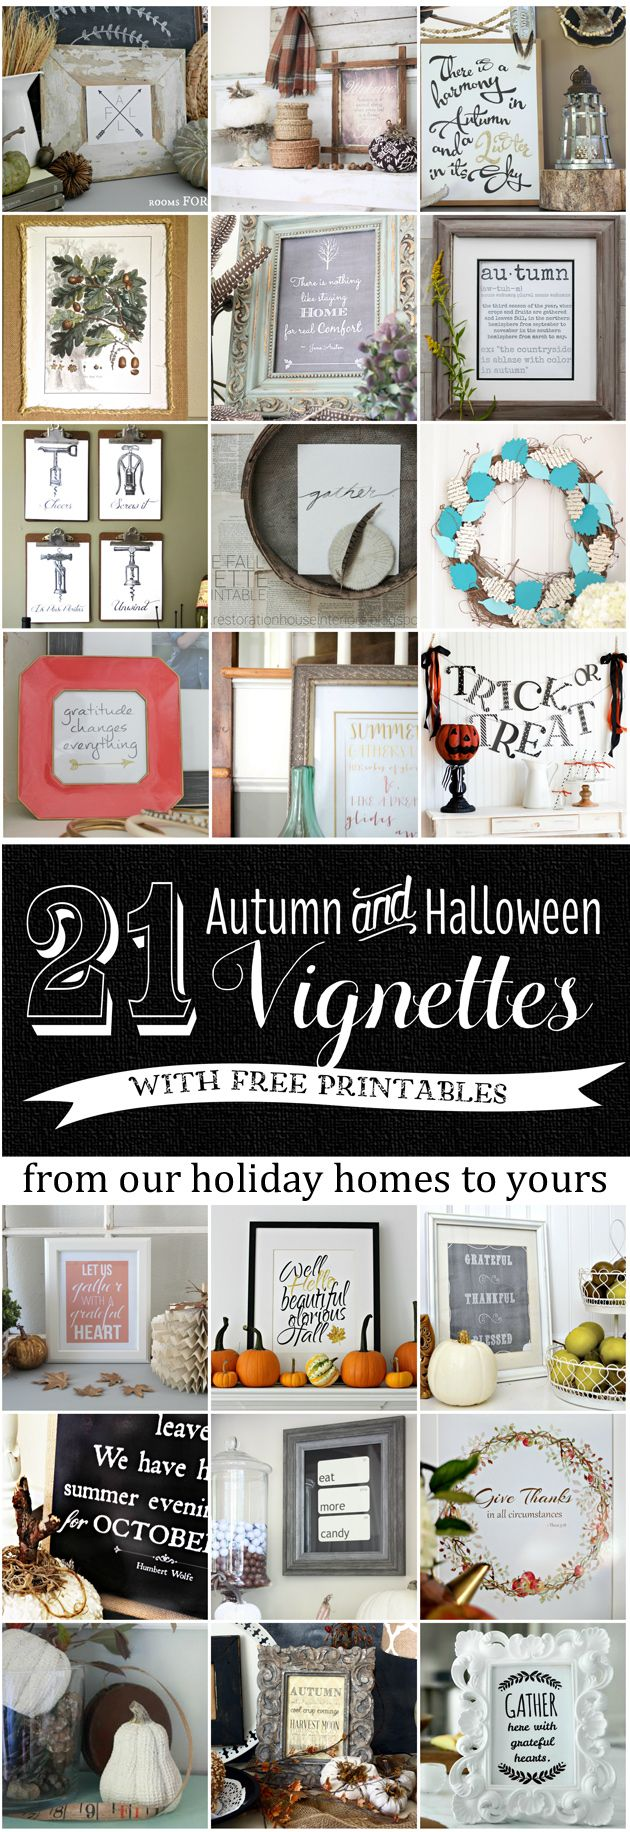 Fall Vignettes and 21 free printables from bloggers. #freeprintablesforfall